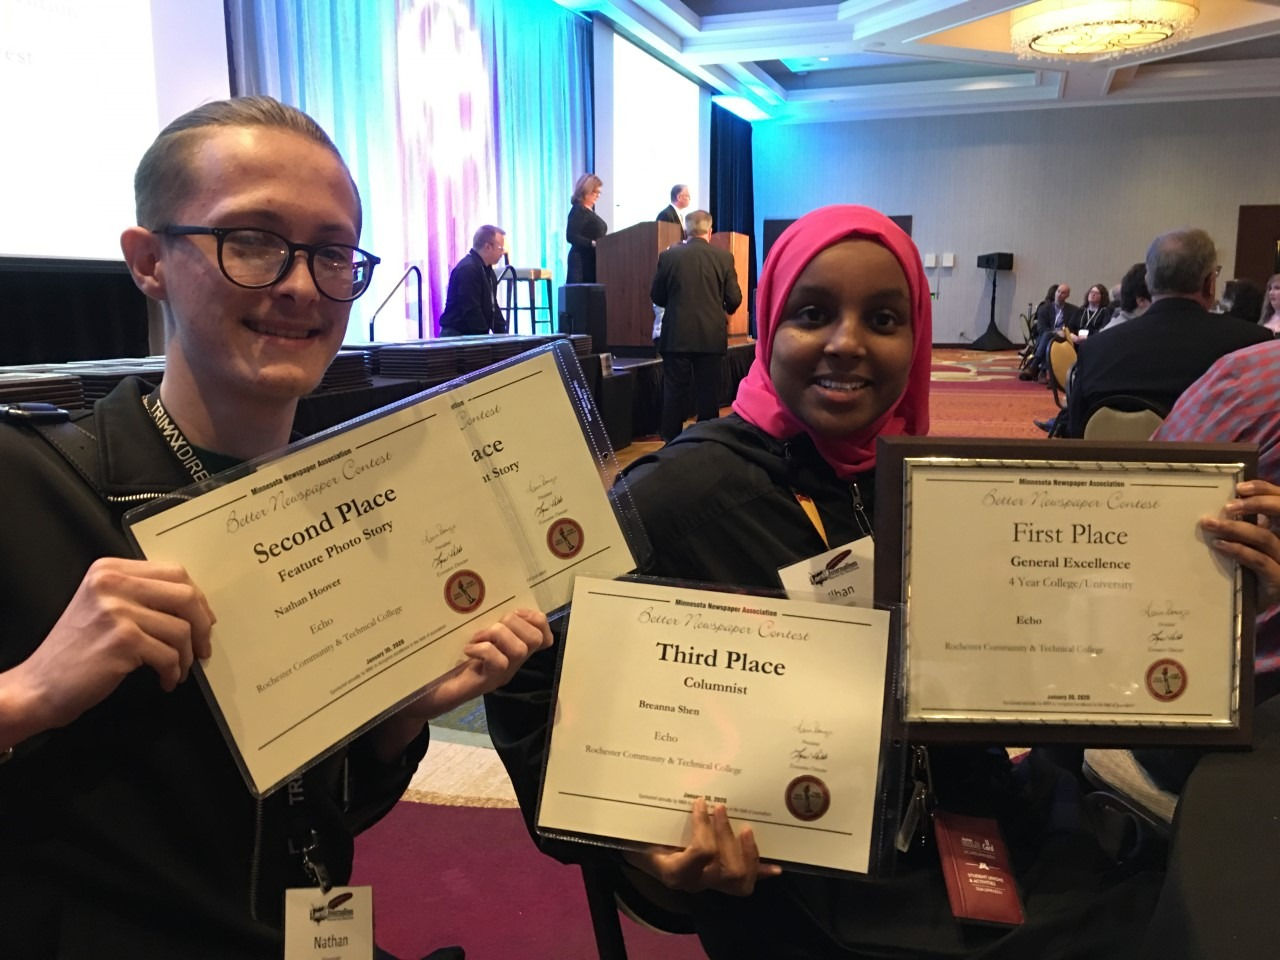 Nathan Hoover and Ilhan Raage represented The Echo on Jan. 30 at the 2020 Minnesota Newspaper Association annual awards ceremony, where The Echo placed first in General Excellence ahead of four-year university newspapers.